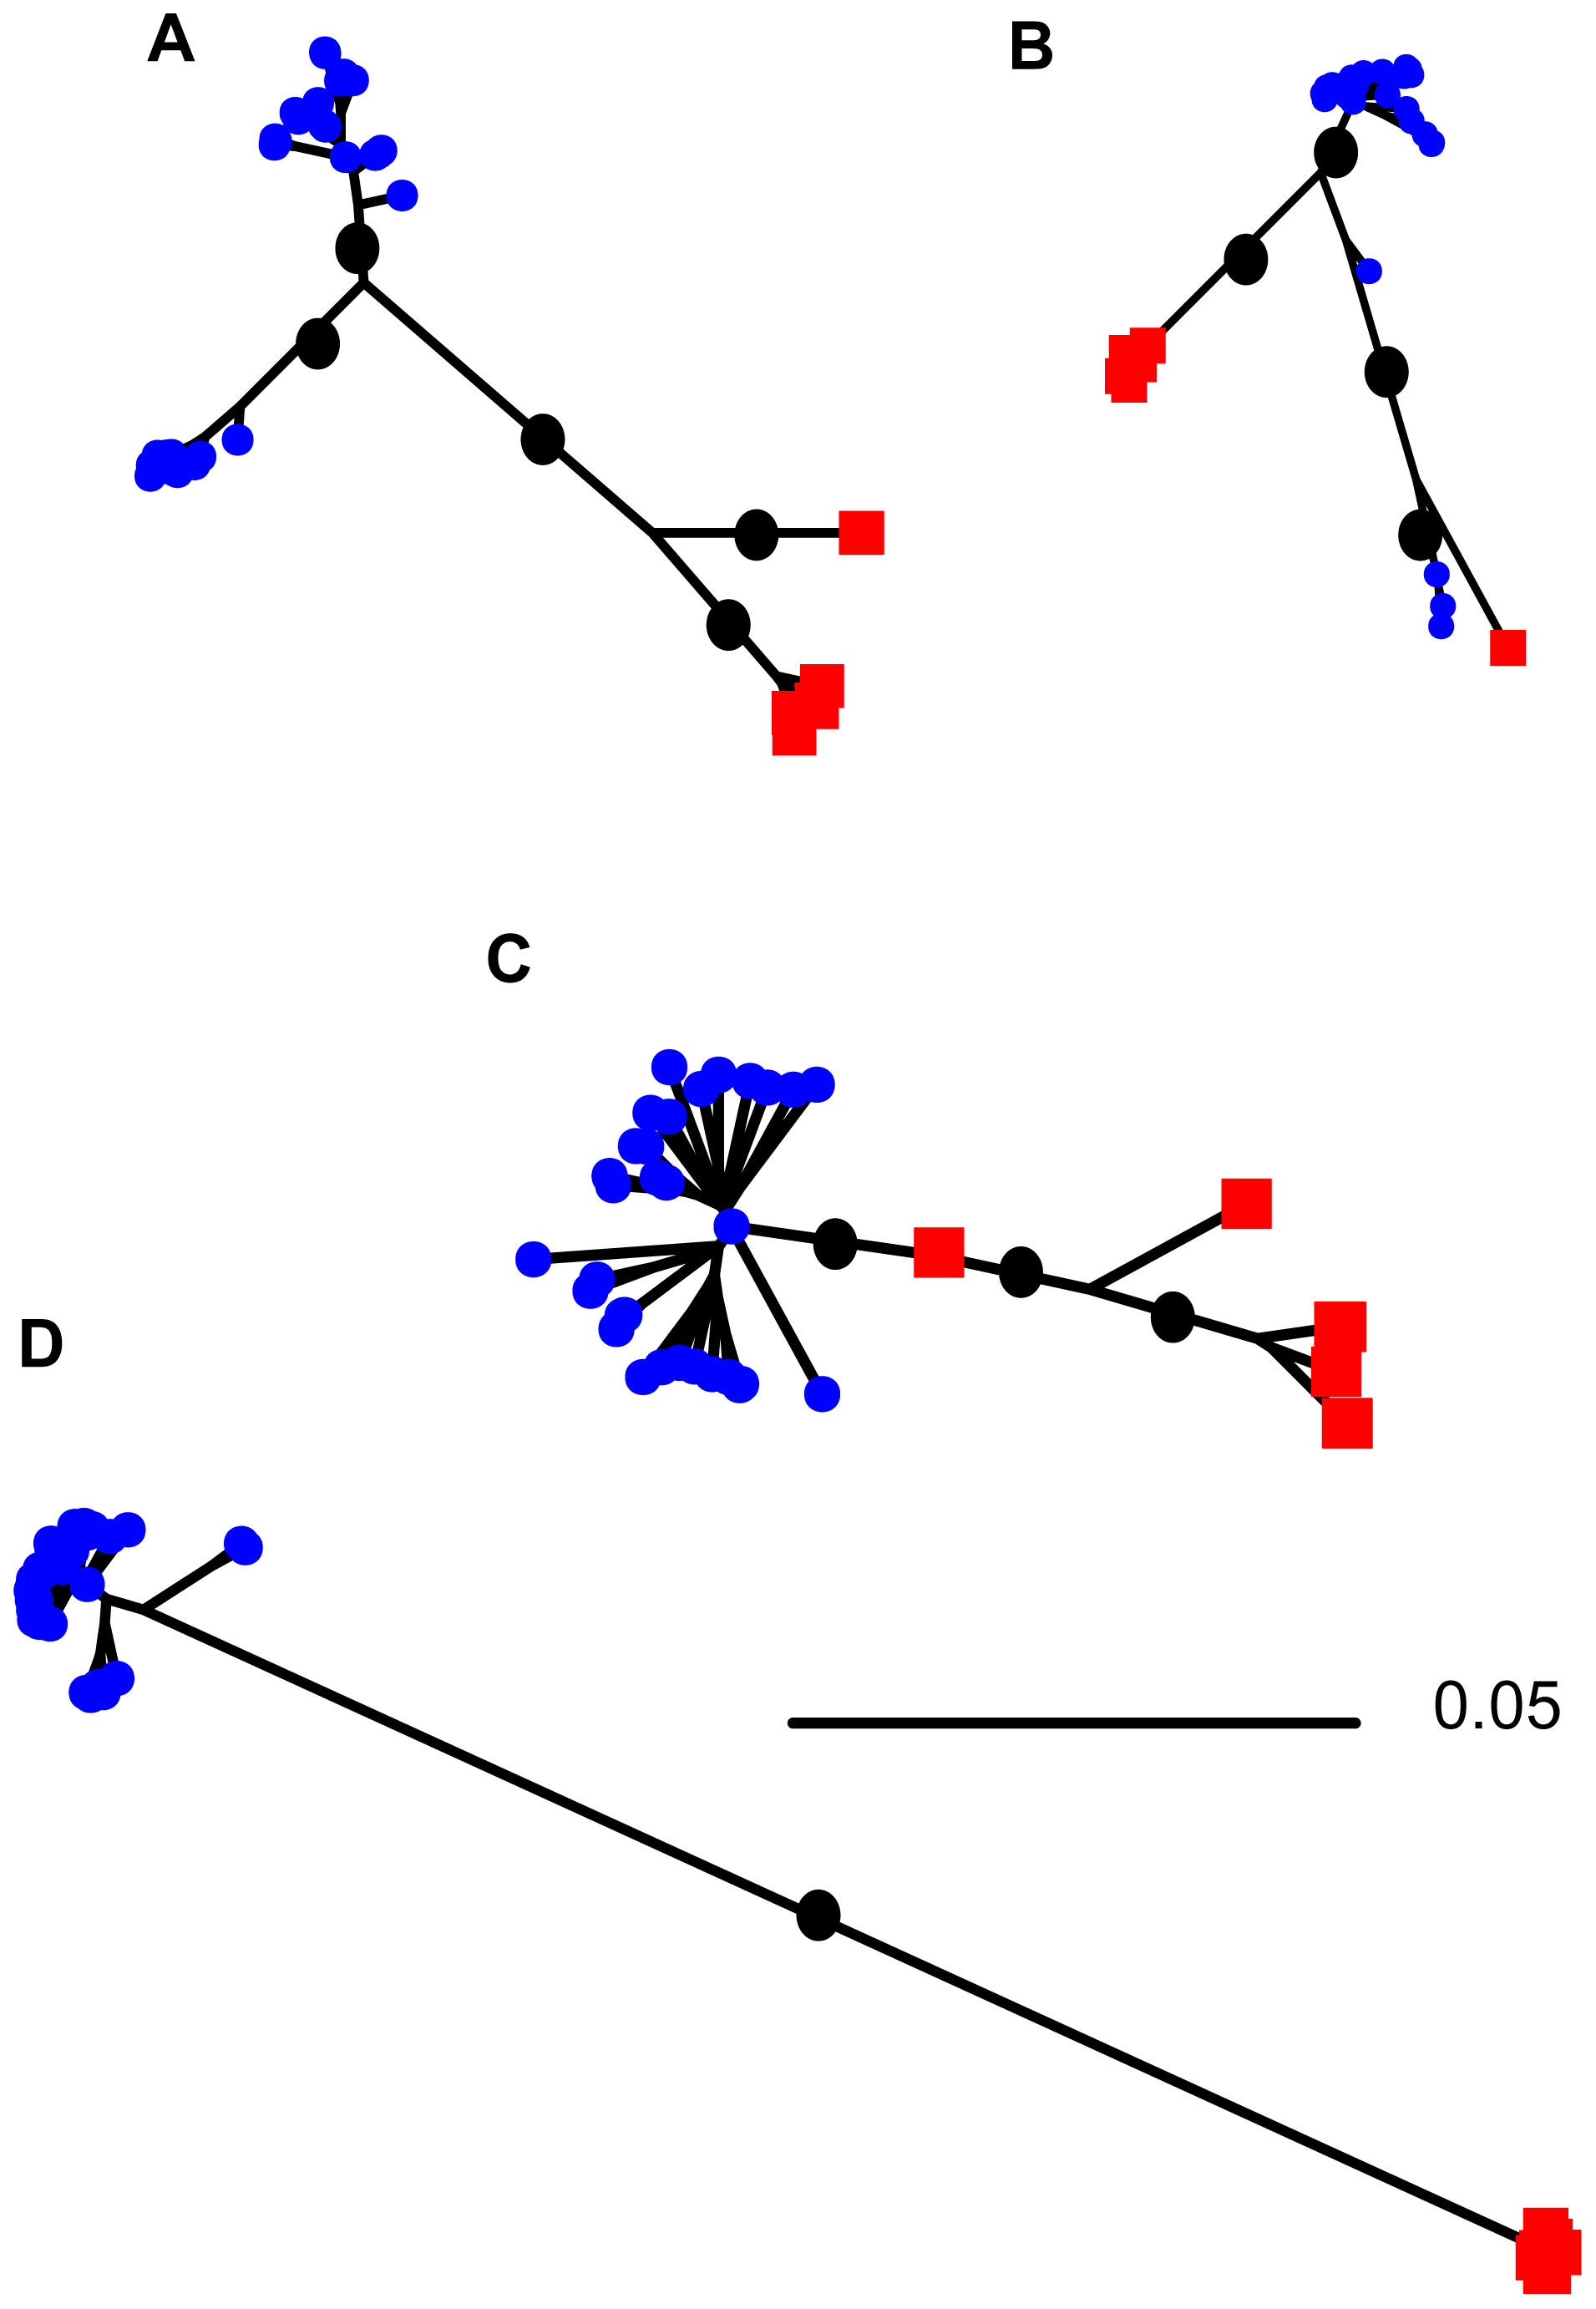 Neighbor-joining trees showing relationships among sequences sampled from <i>S. meliloti</i> (blue squares) and <i>S. medicae</i> (red circles) for genes showing evidence of horizontal gene transfer.